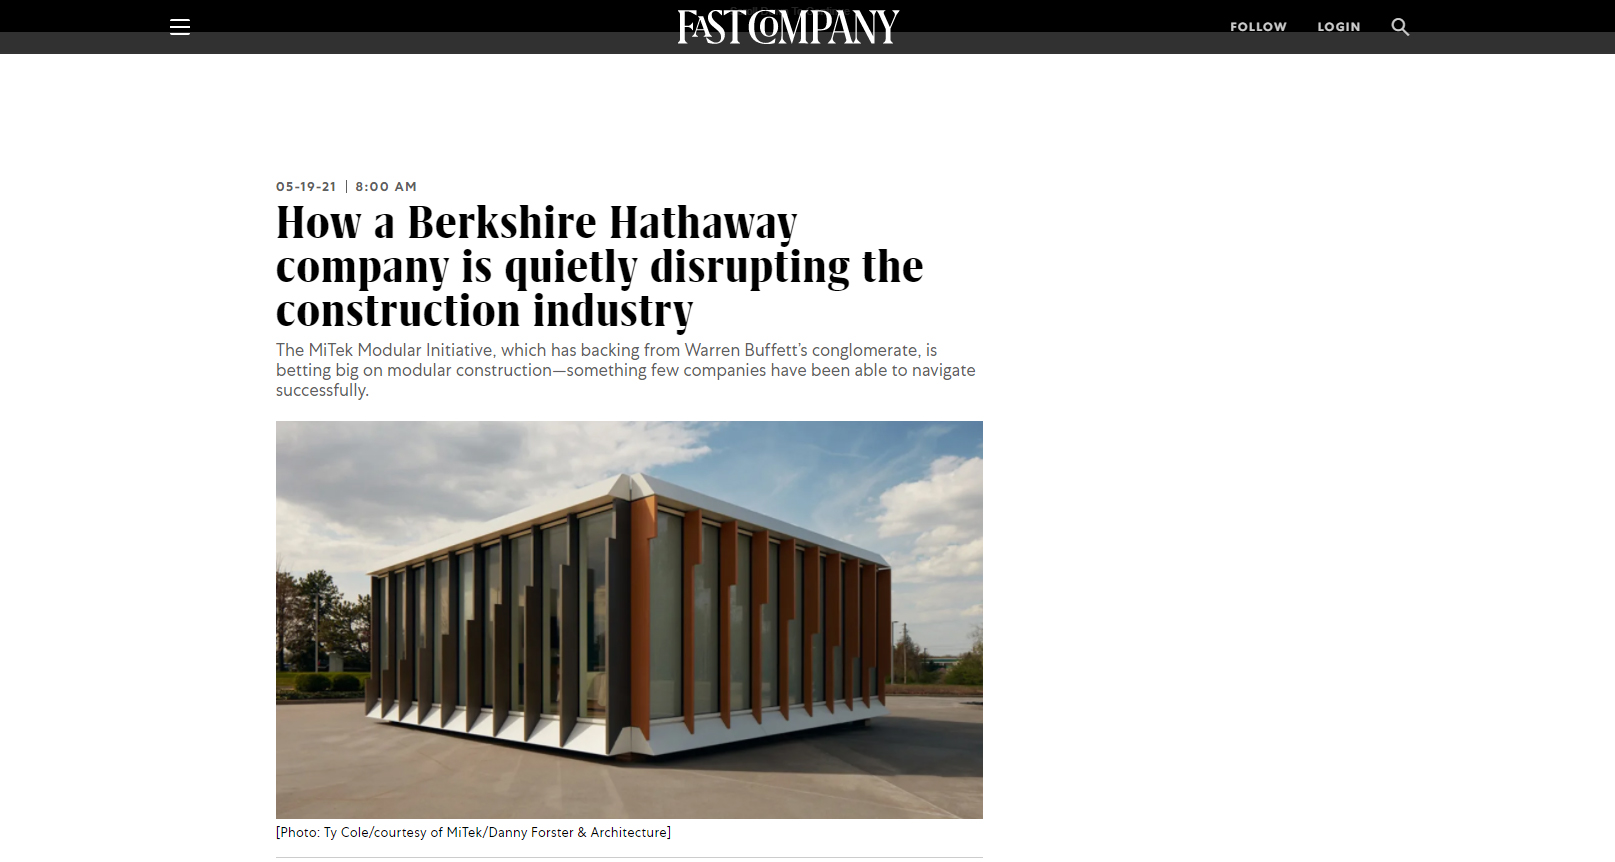 """Article on Fast Company """"How a Berkshire Hathaway company is quietly disrupting the construction industry"""""""